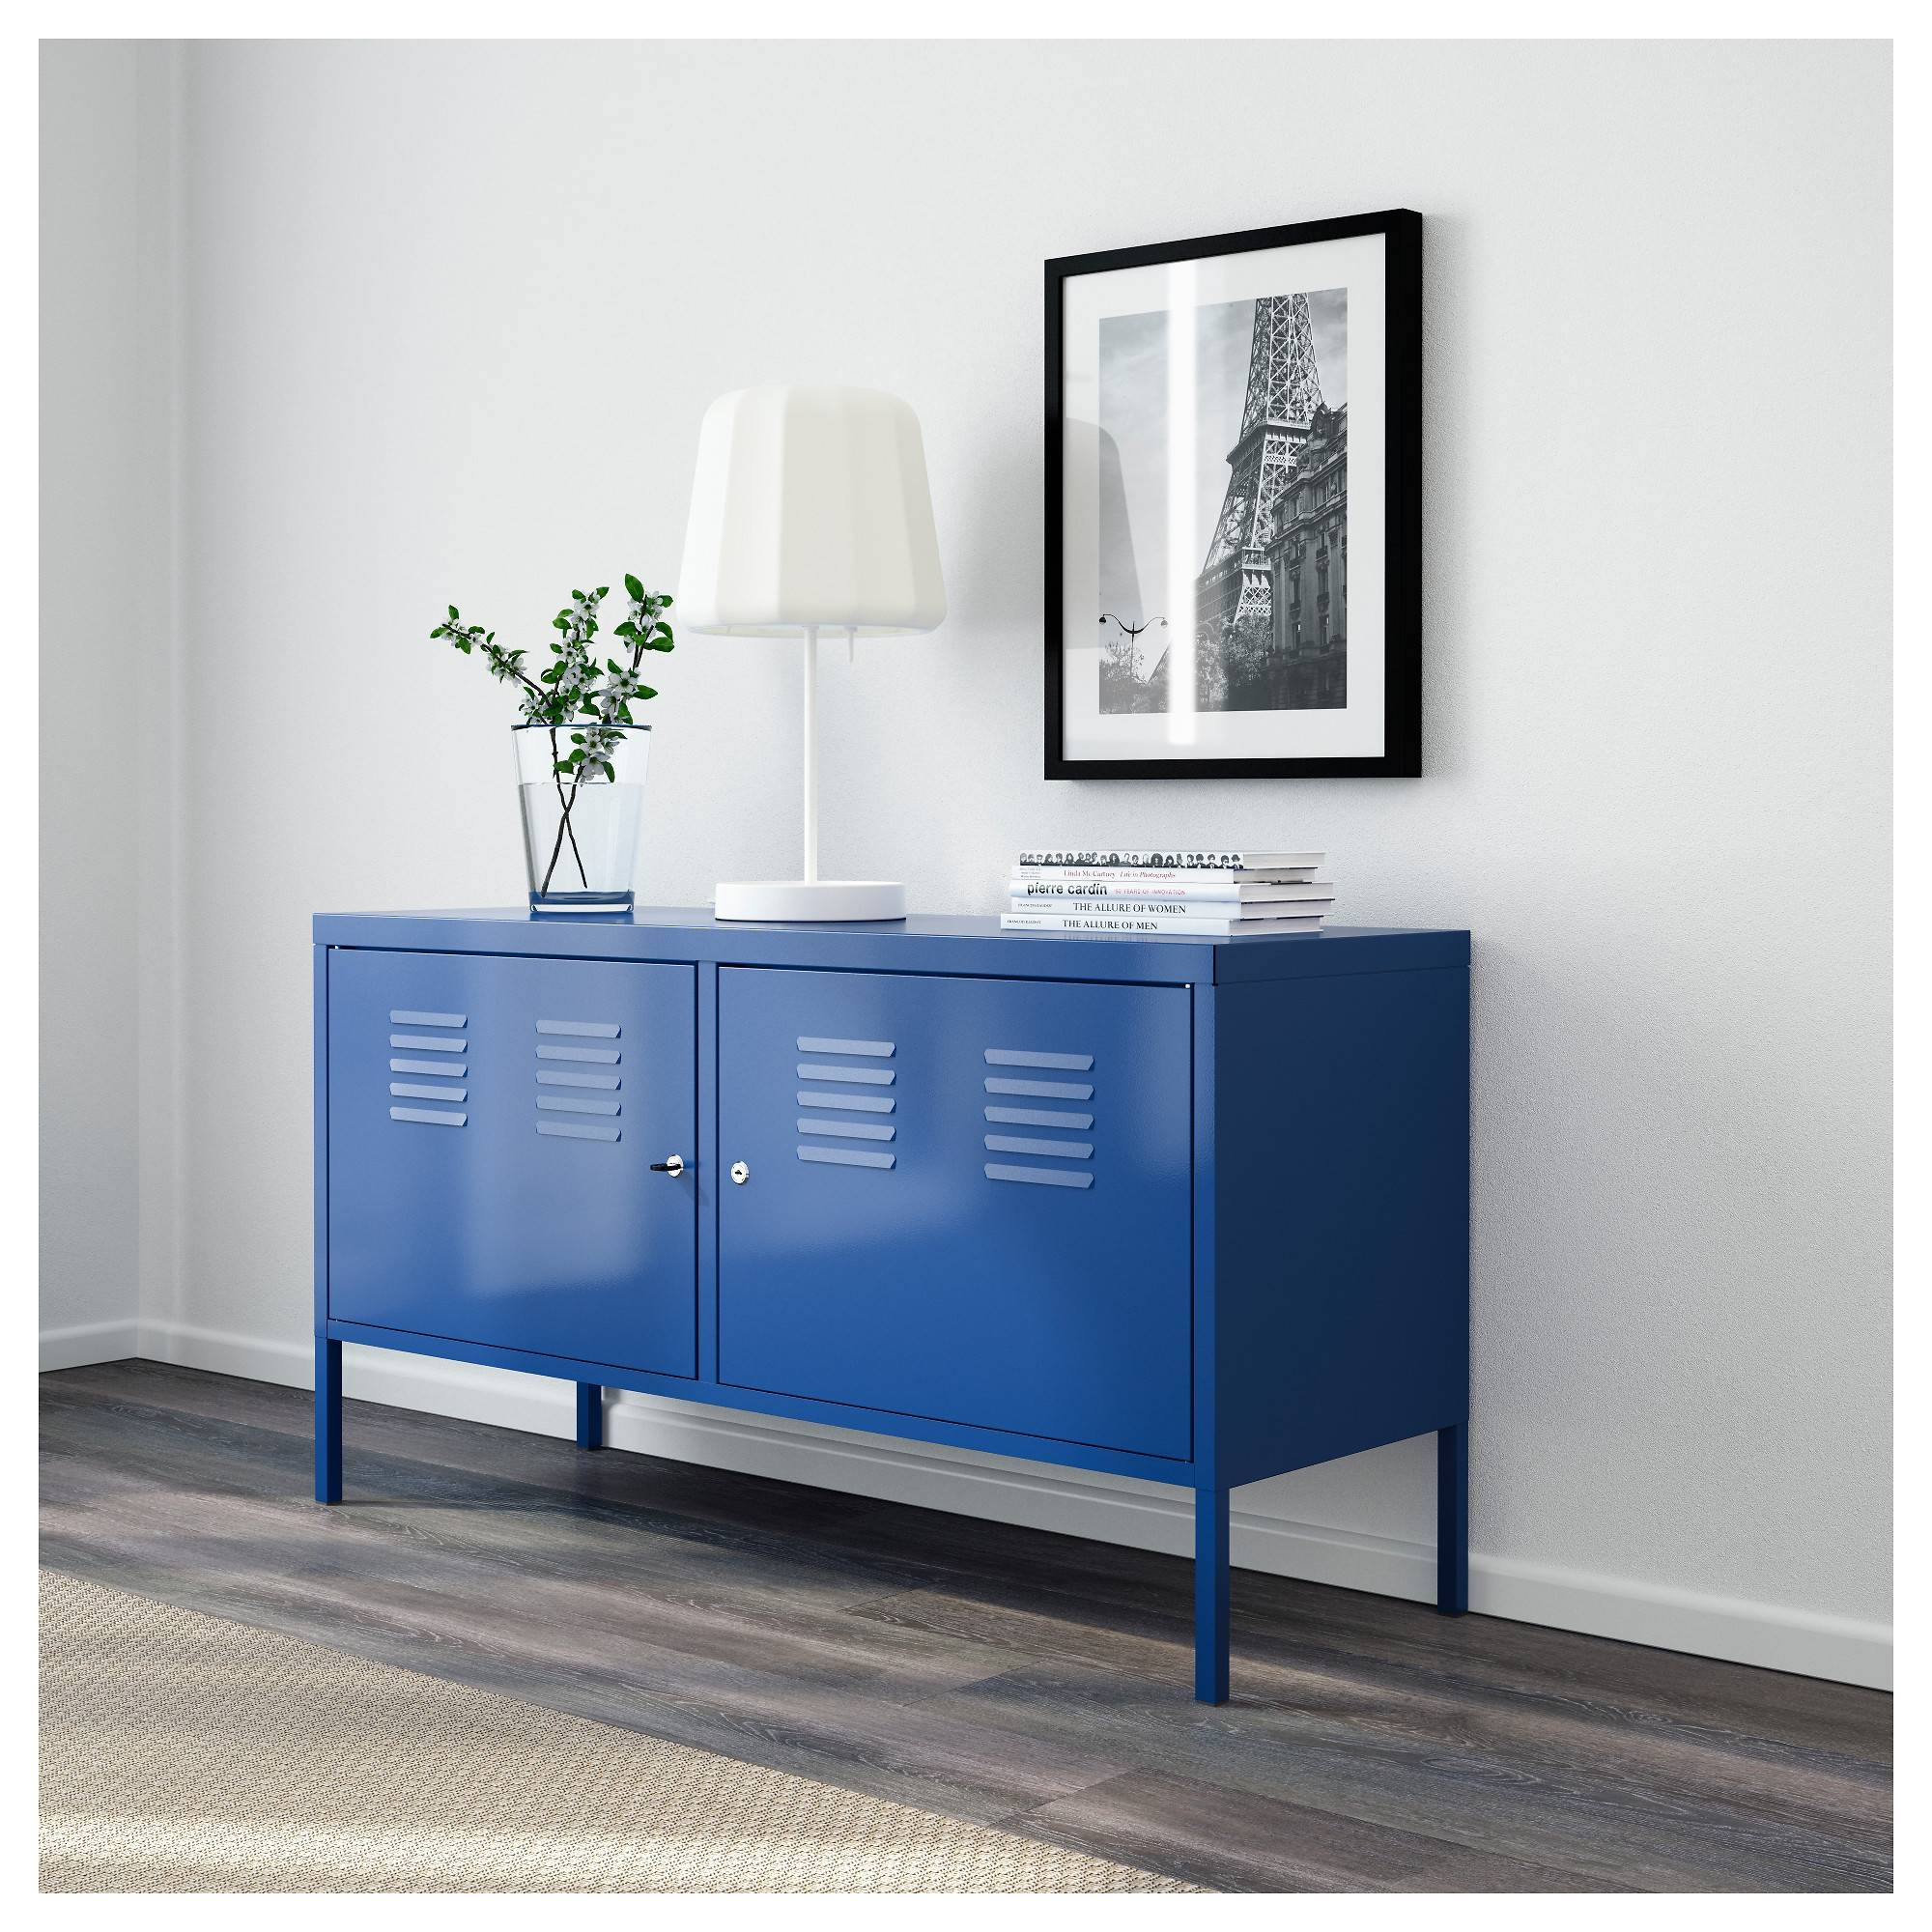 Ikea Ps Cabinet Blue 119X63 Cm - Ikea for Blue Sideboards (Image 4 of 15)